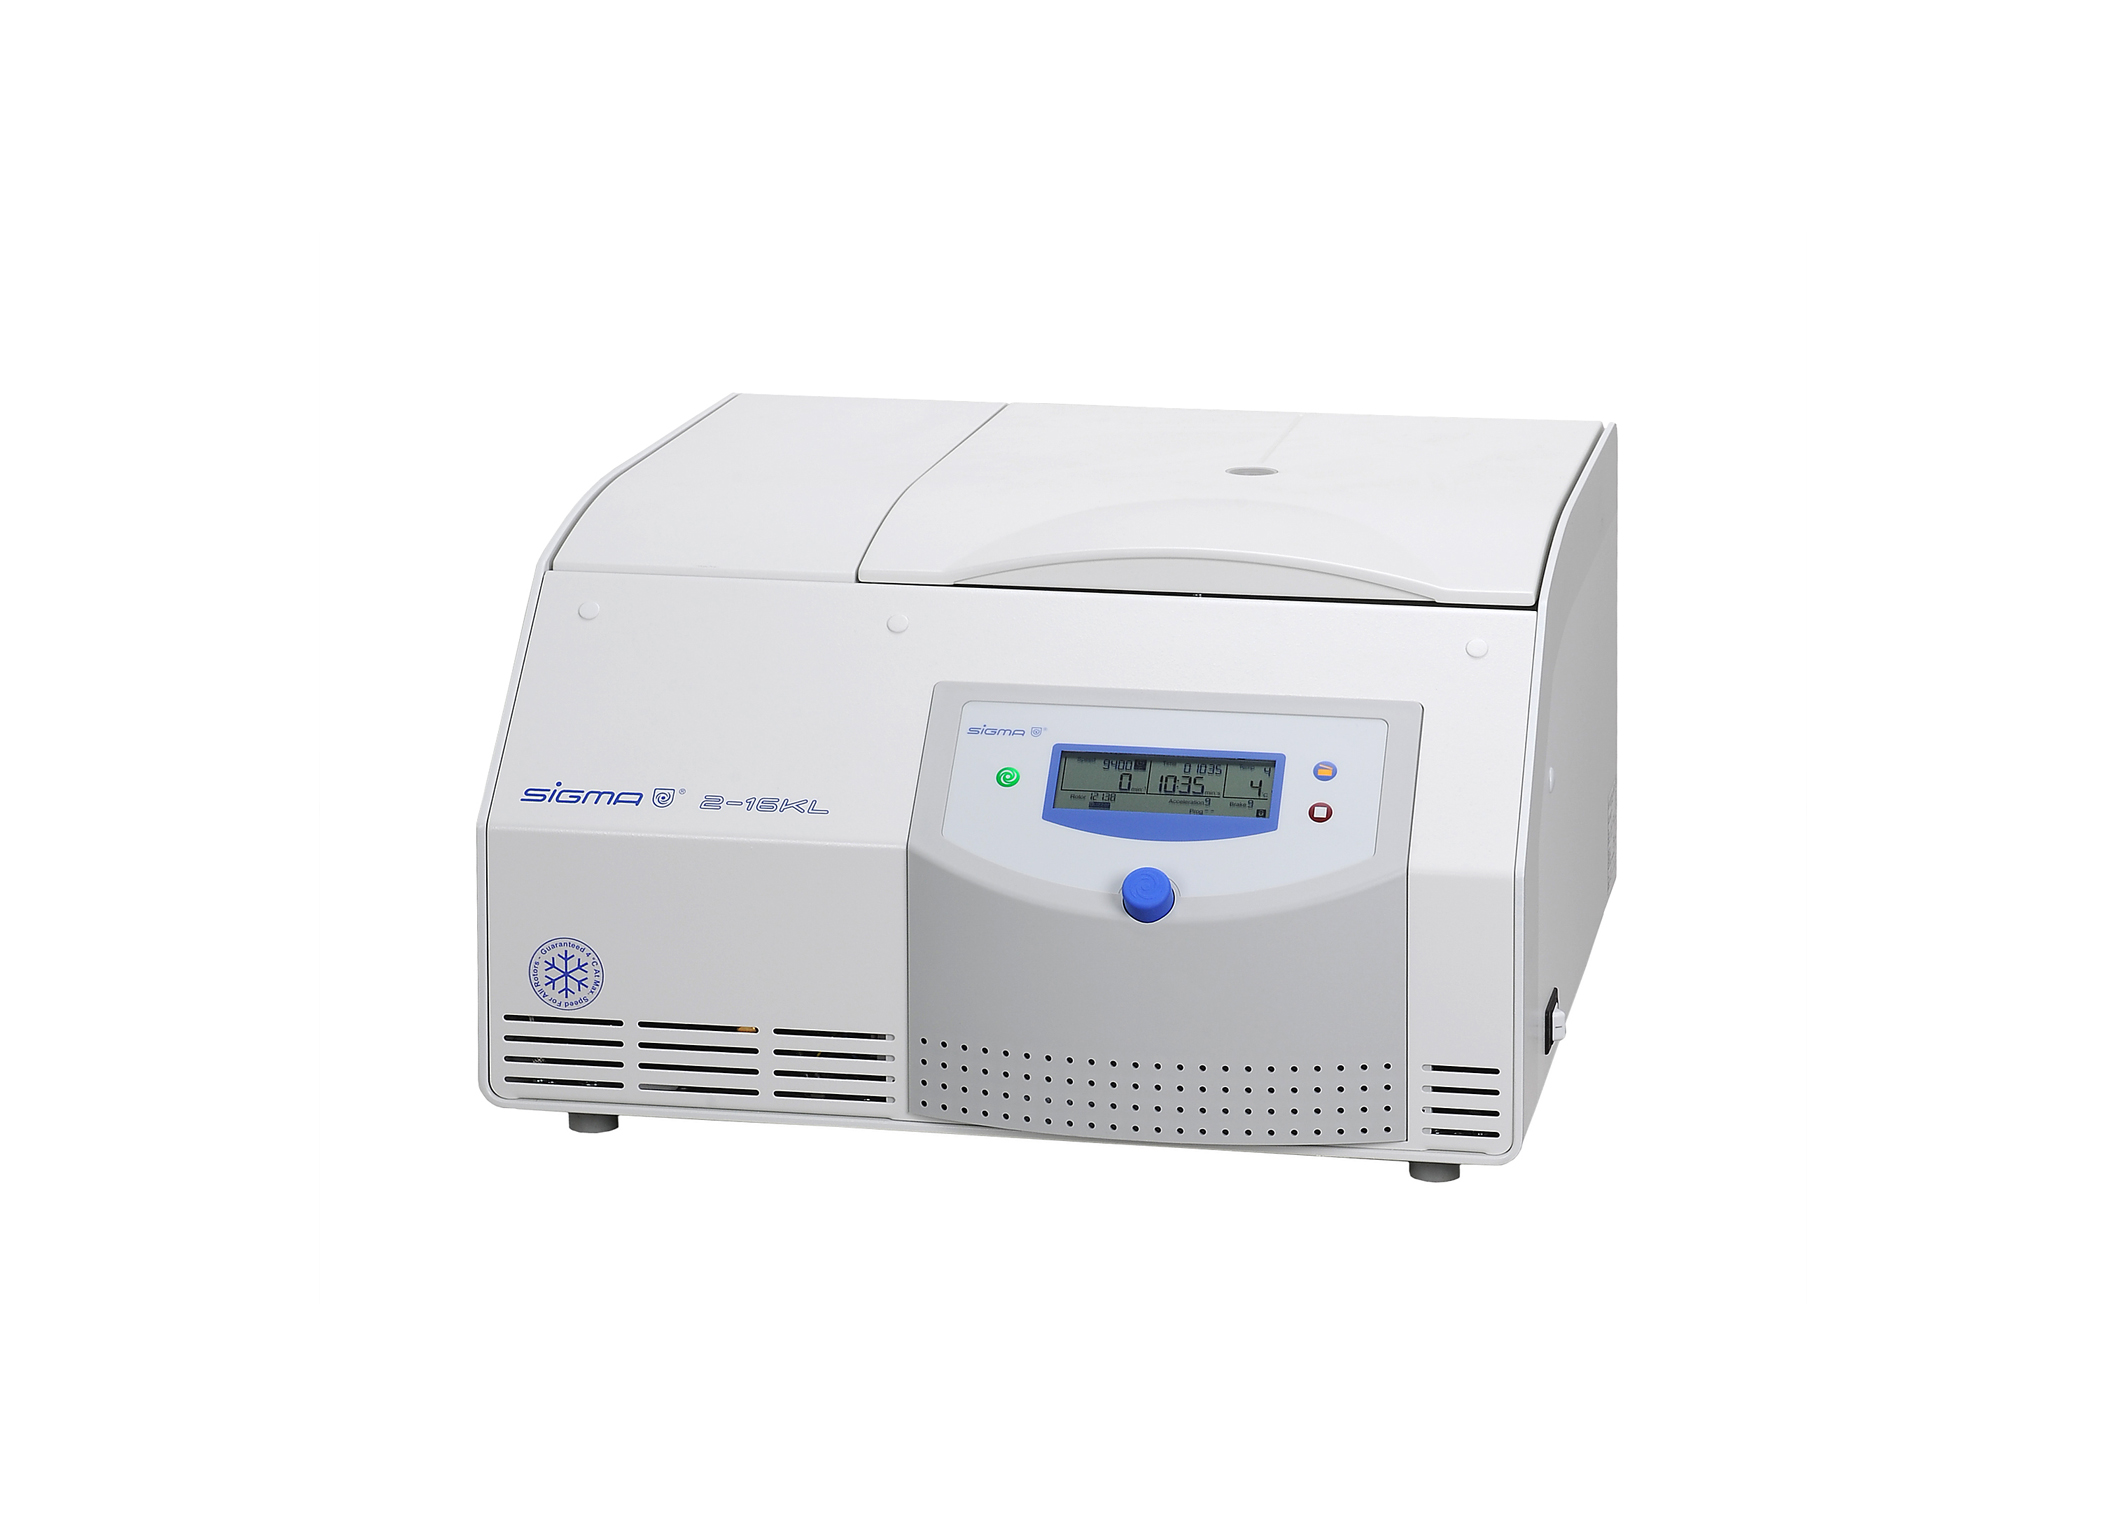 Sigma 2-16KL, refrigerated table top centrifuge, 220-240 V, 50/60 Hz""